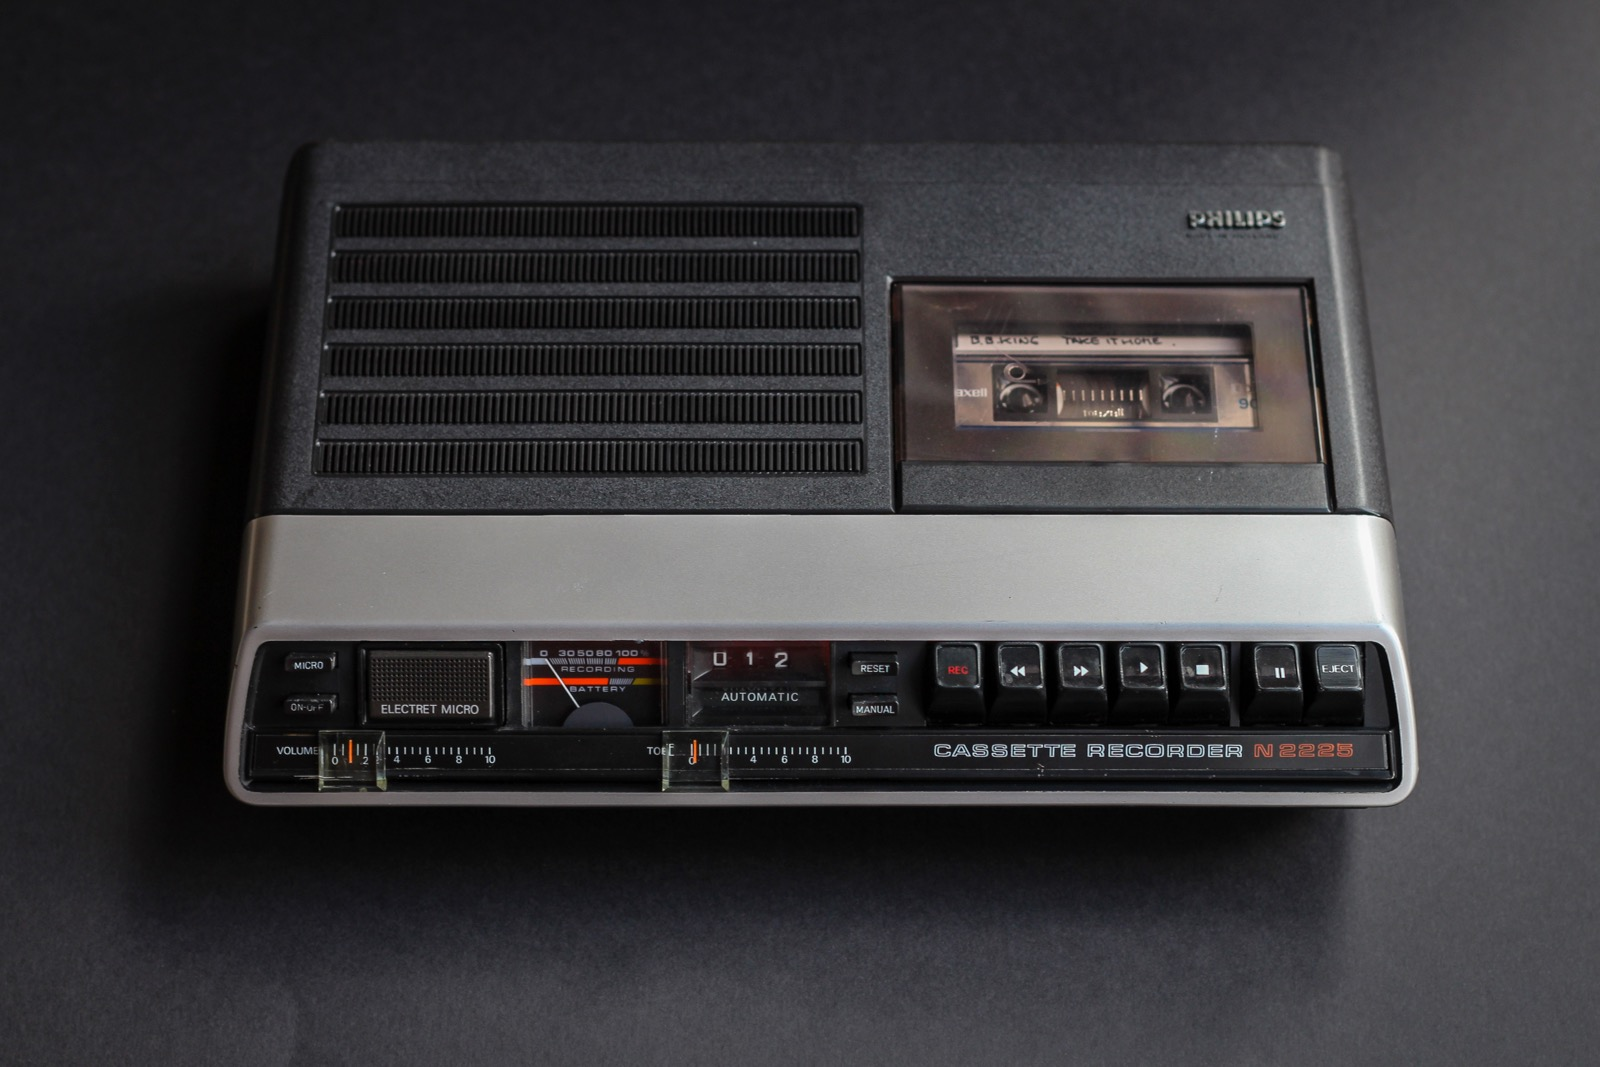 Philips N2225 Cassette Recorder